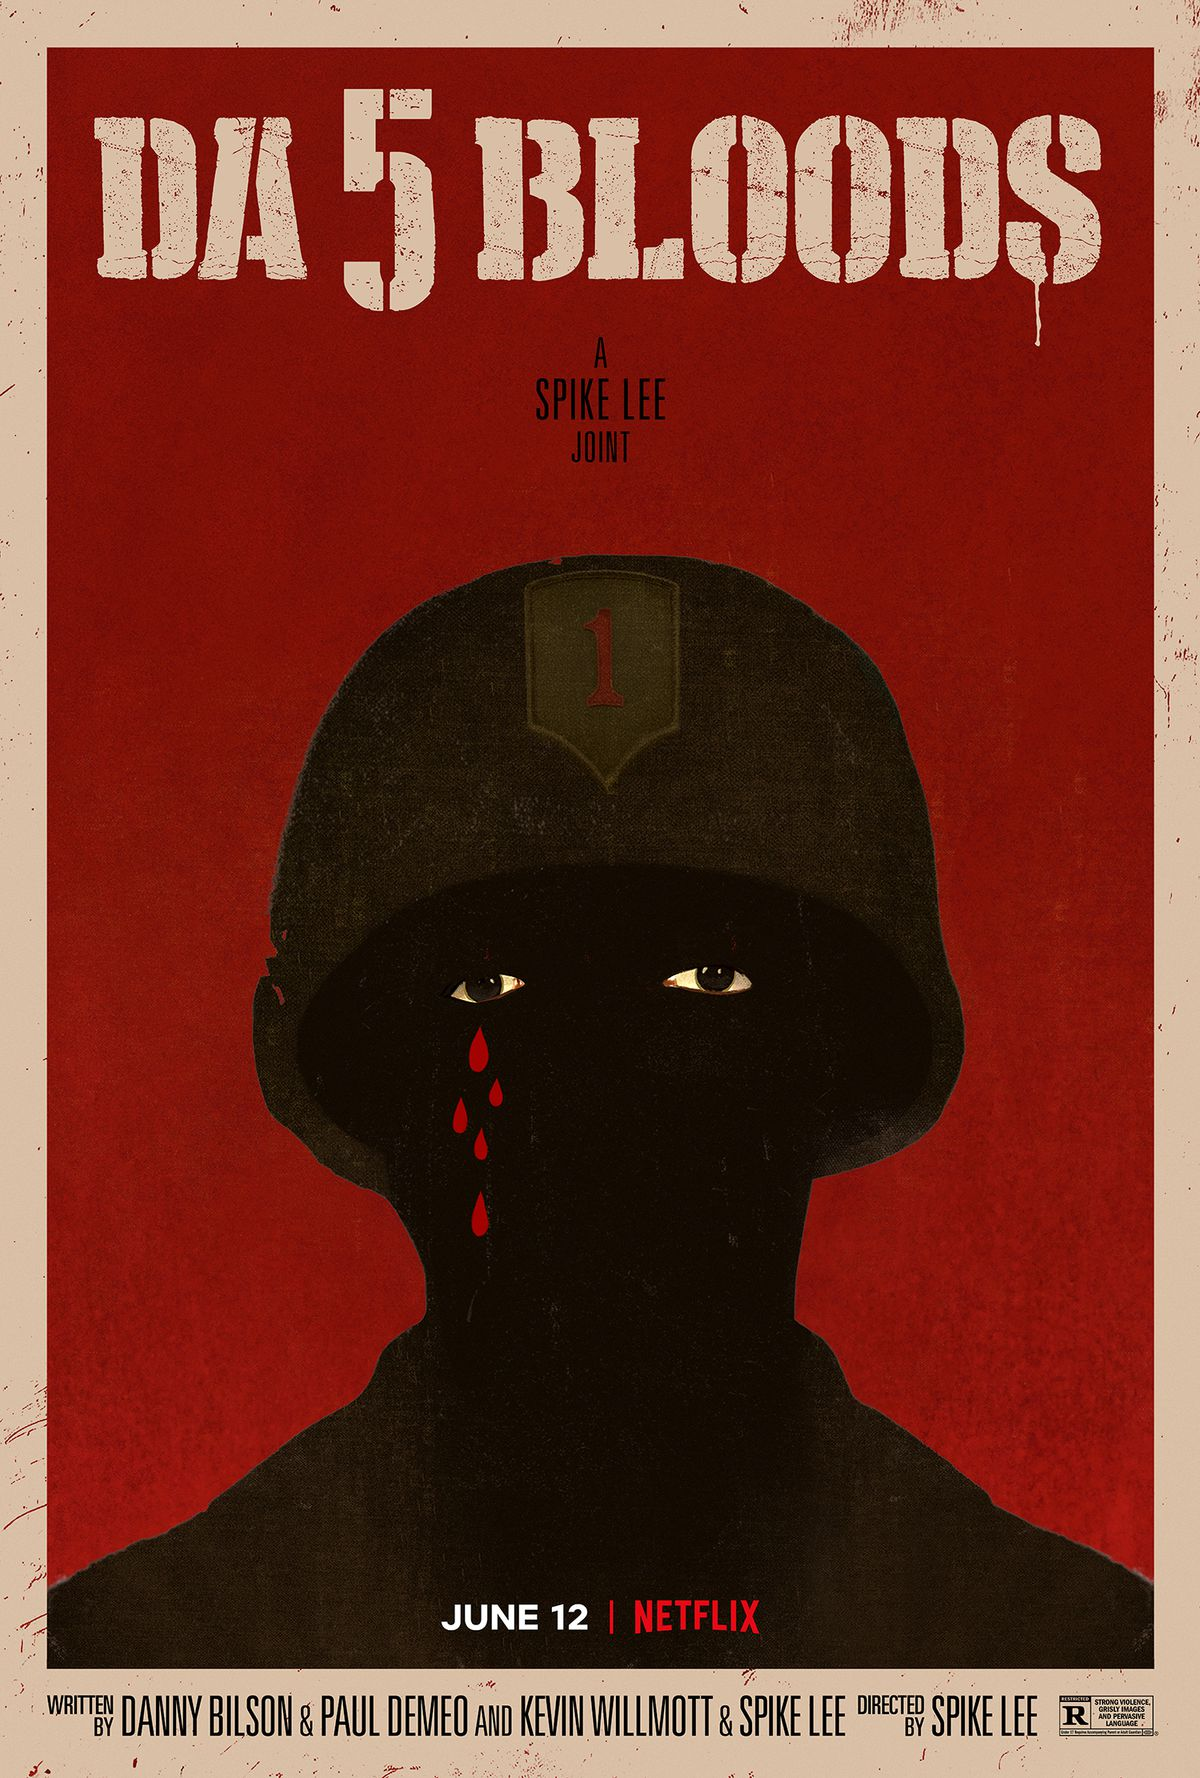 A poster of a black soldier wearing a helmet and crying tears of blood.